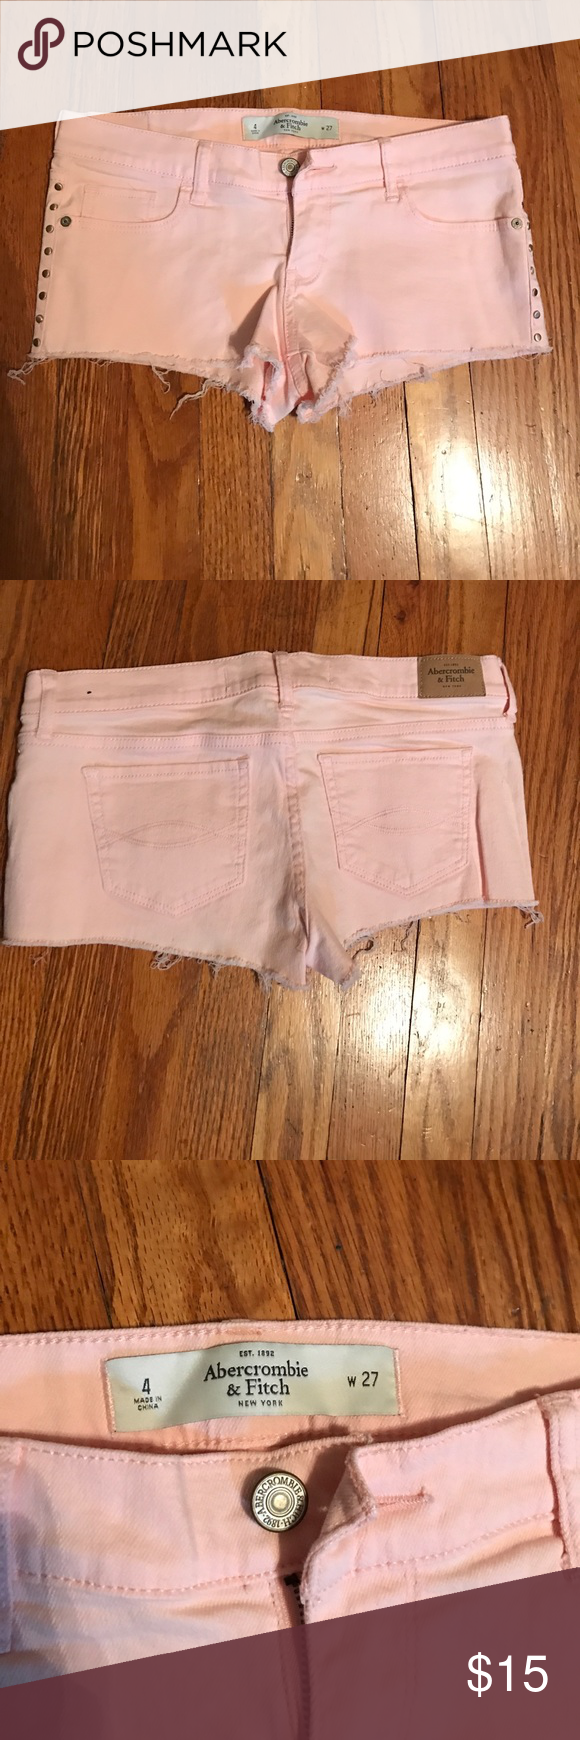 Abercrombie & Fitch shorts Light pink shorts- gold studs- destroyed look- size 4 Abercrombie & Fitch Shorts Jean Shorts